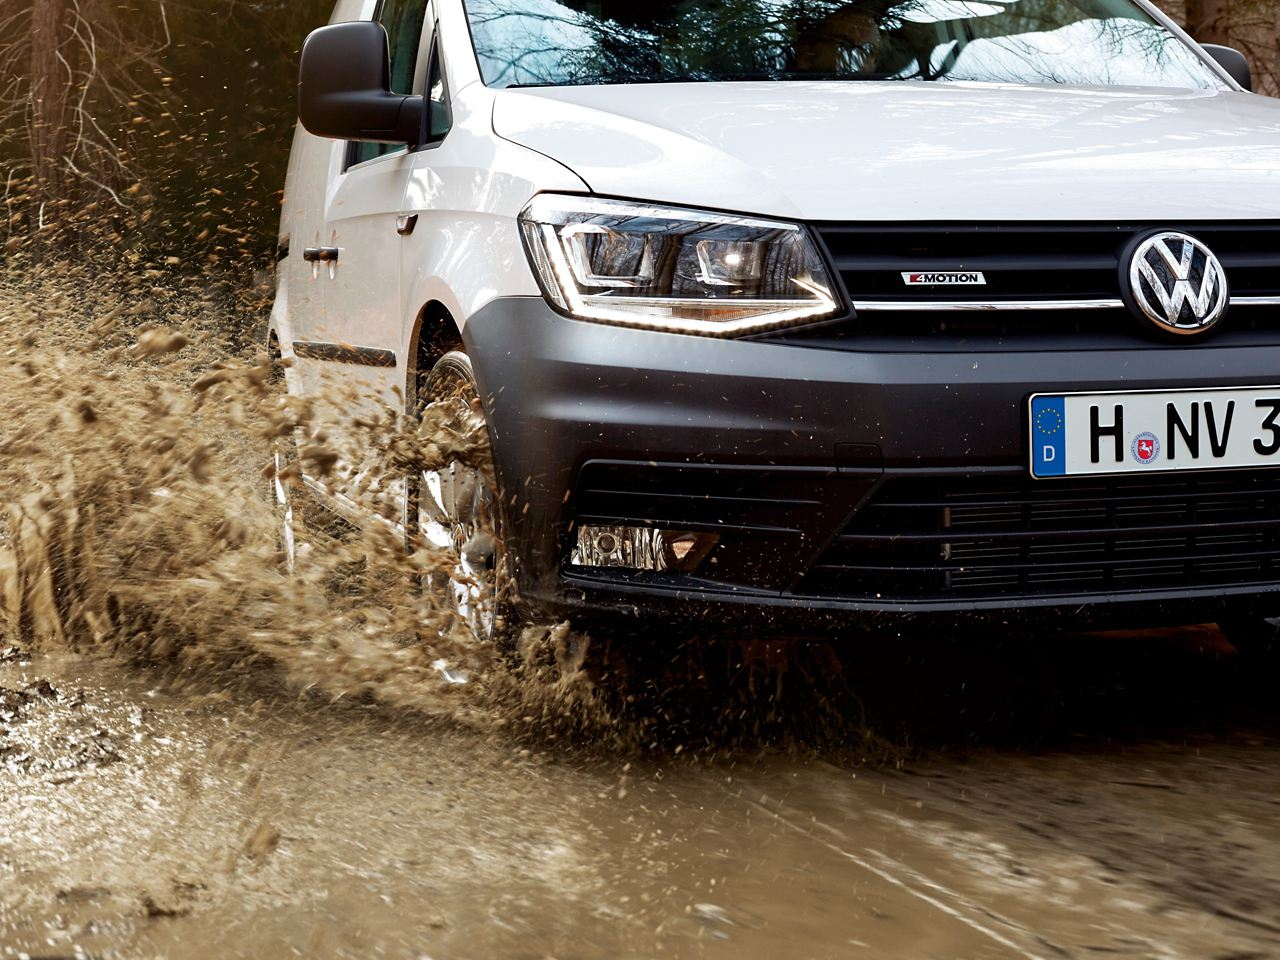 Cdc0458 Vw Caddy Commercial Delivery Van Driving Through Puddle 16X9 2560X1440 2